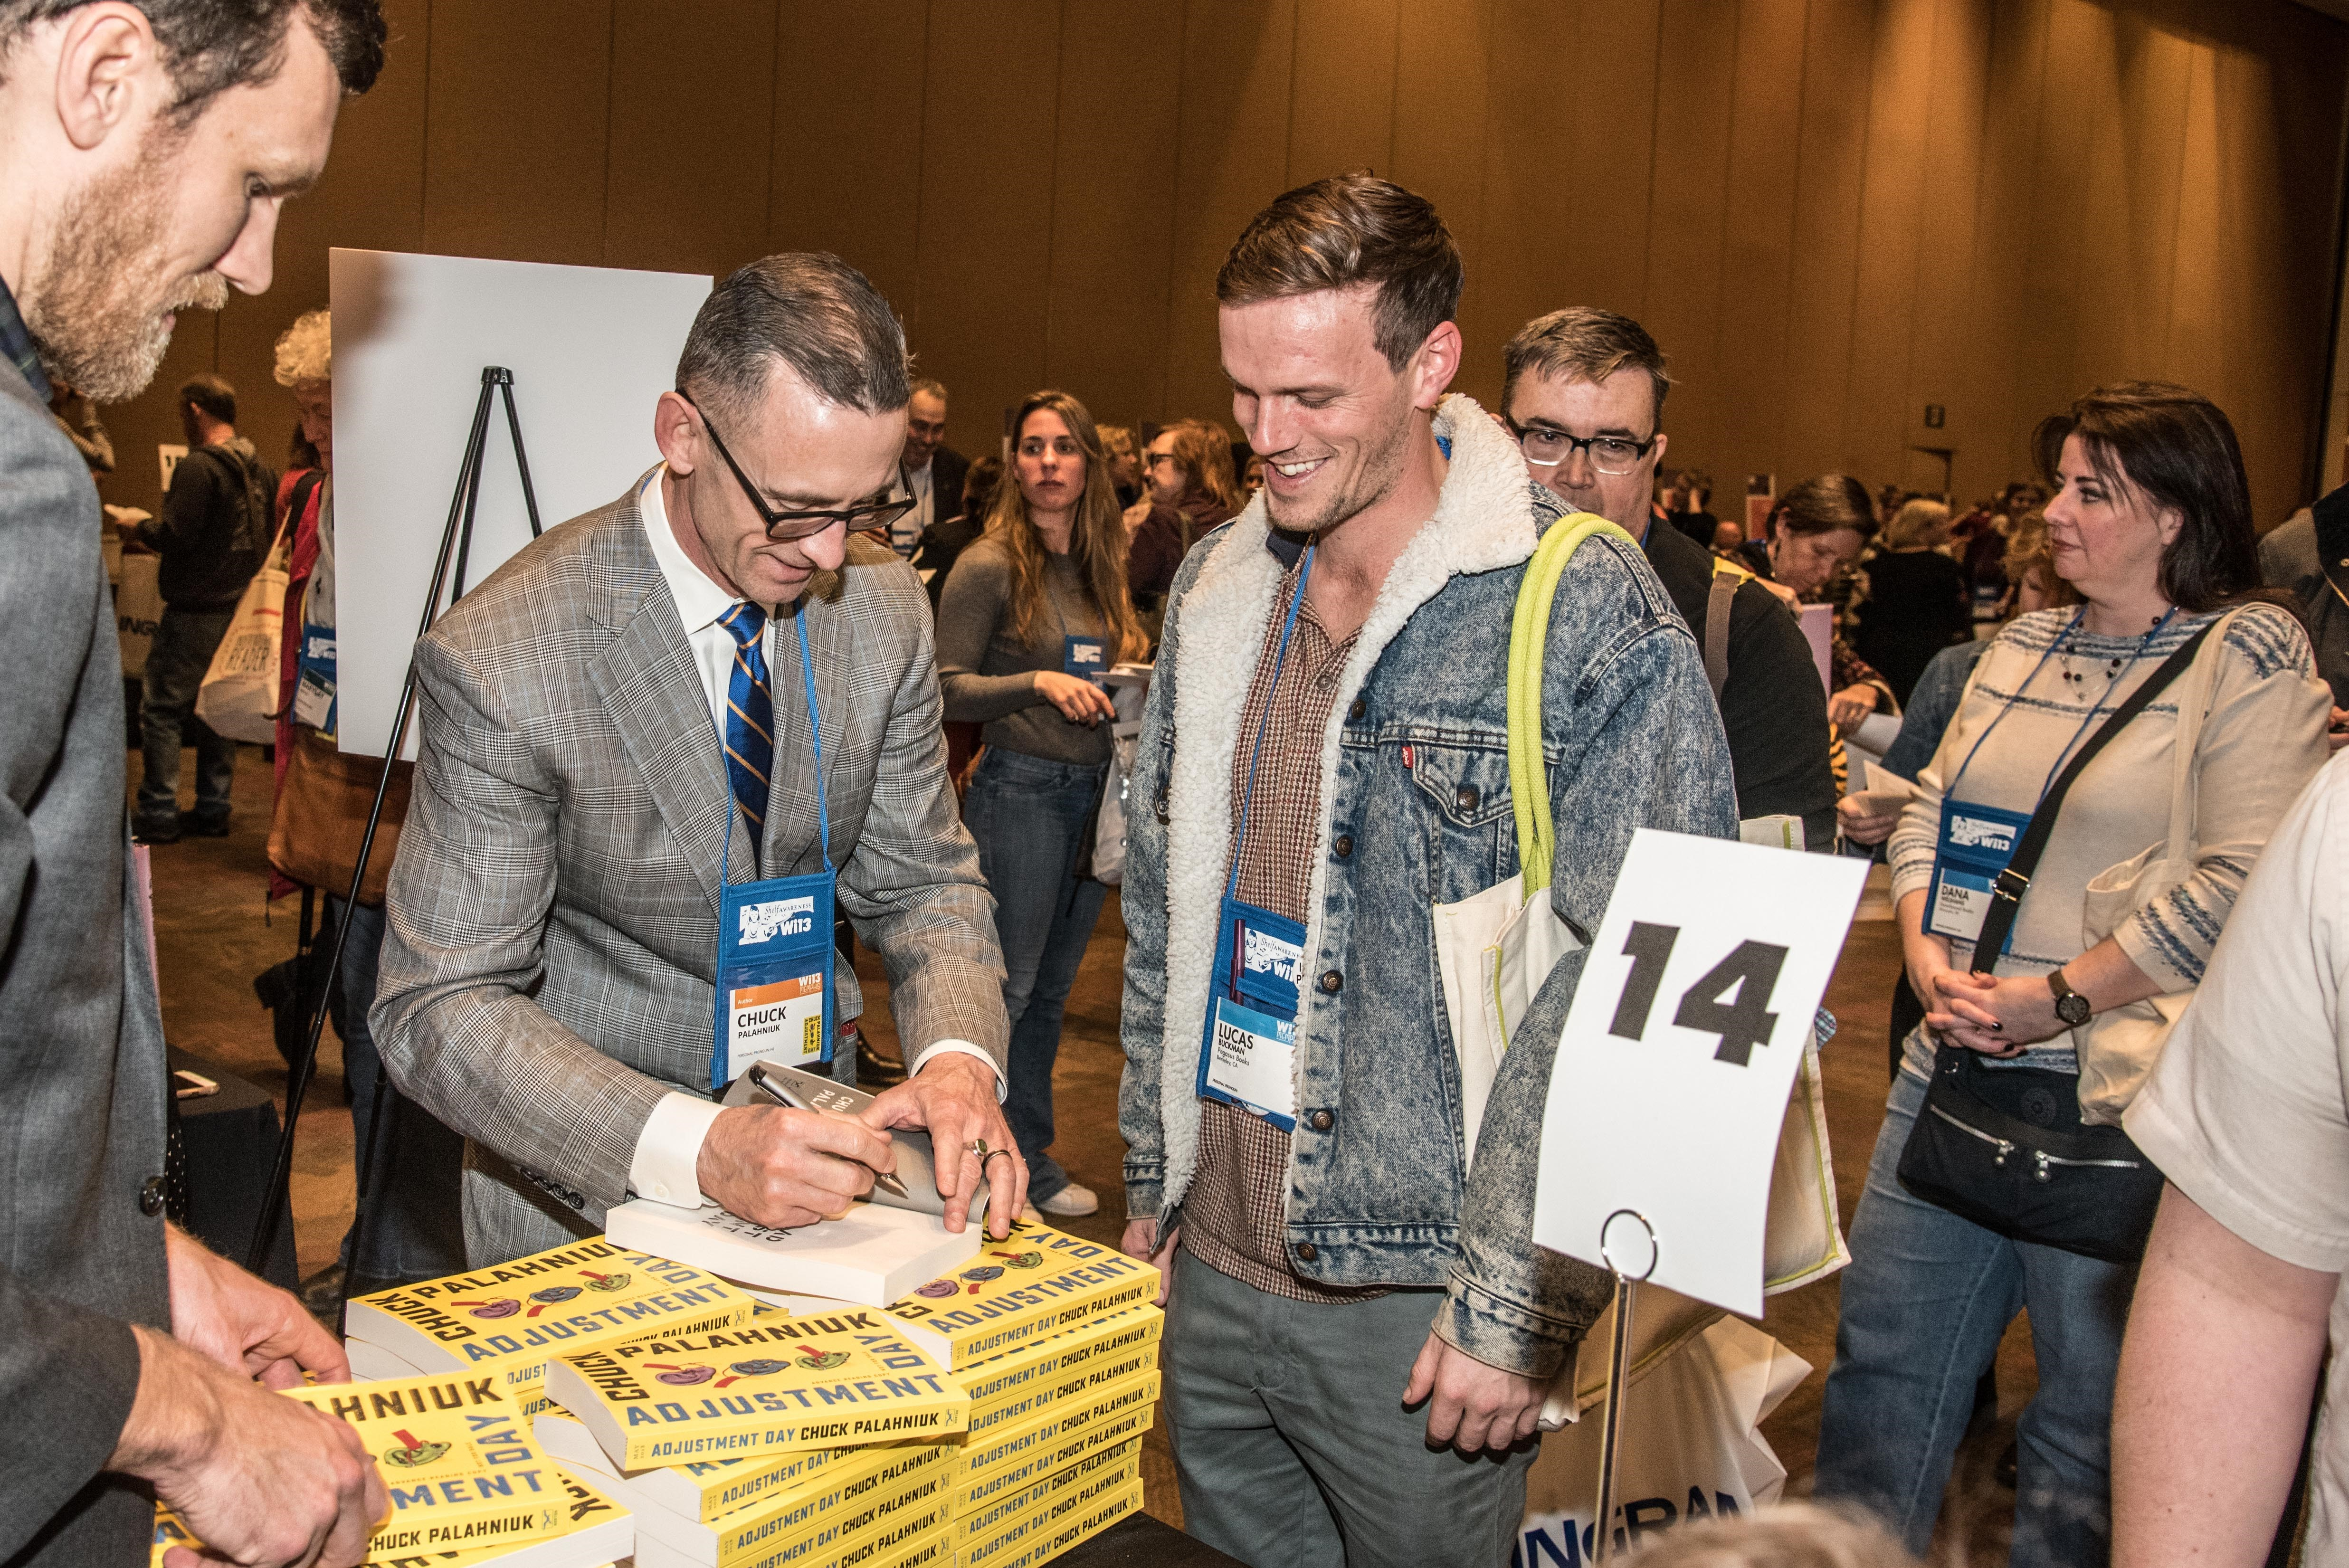 Chuck Palahniuk signs his newest novel at the Author Reception.